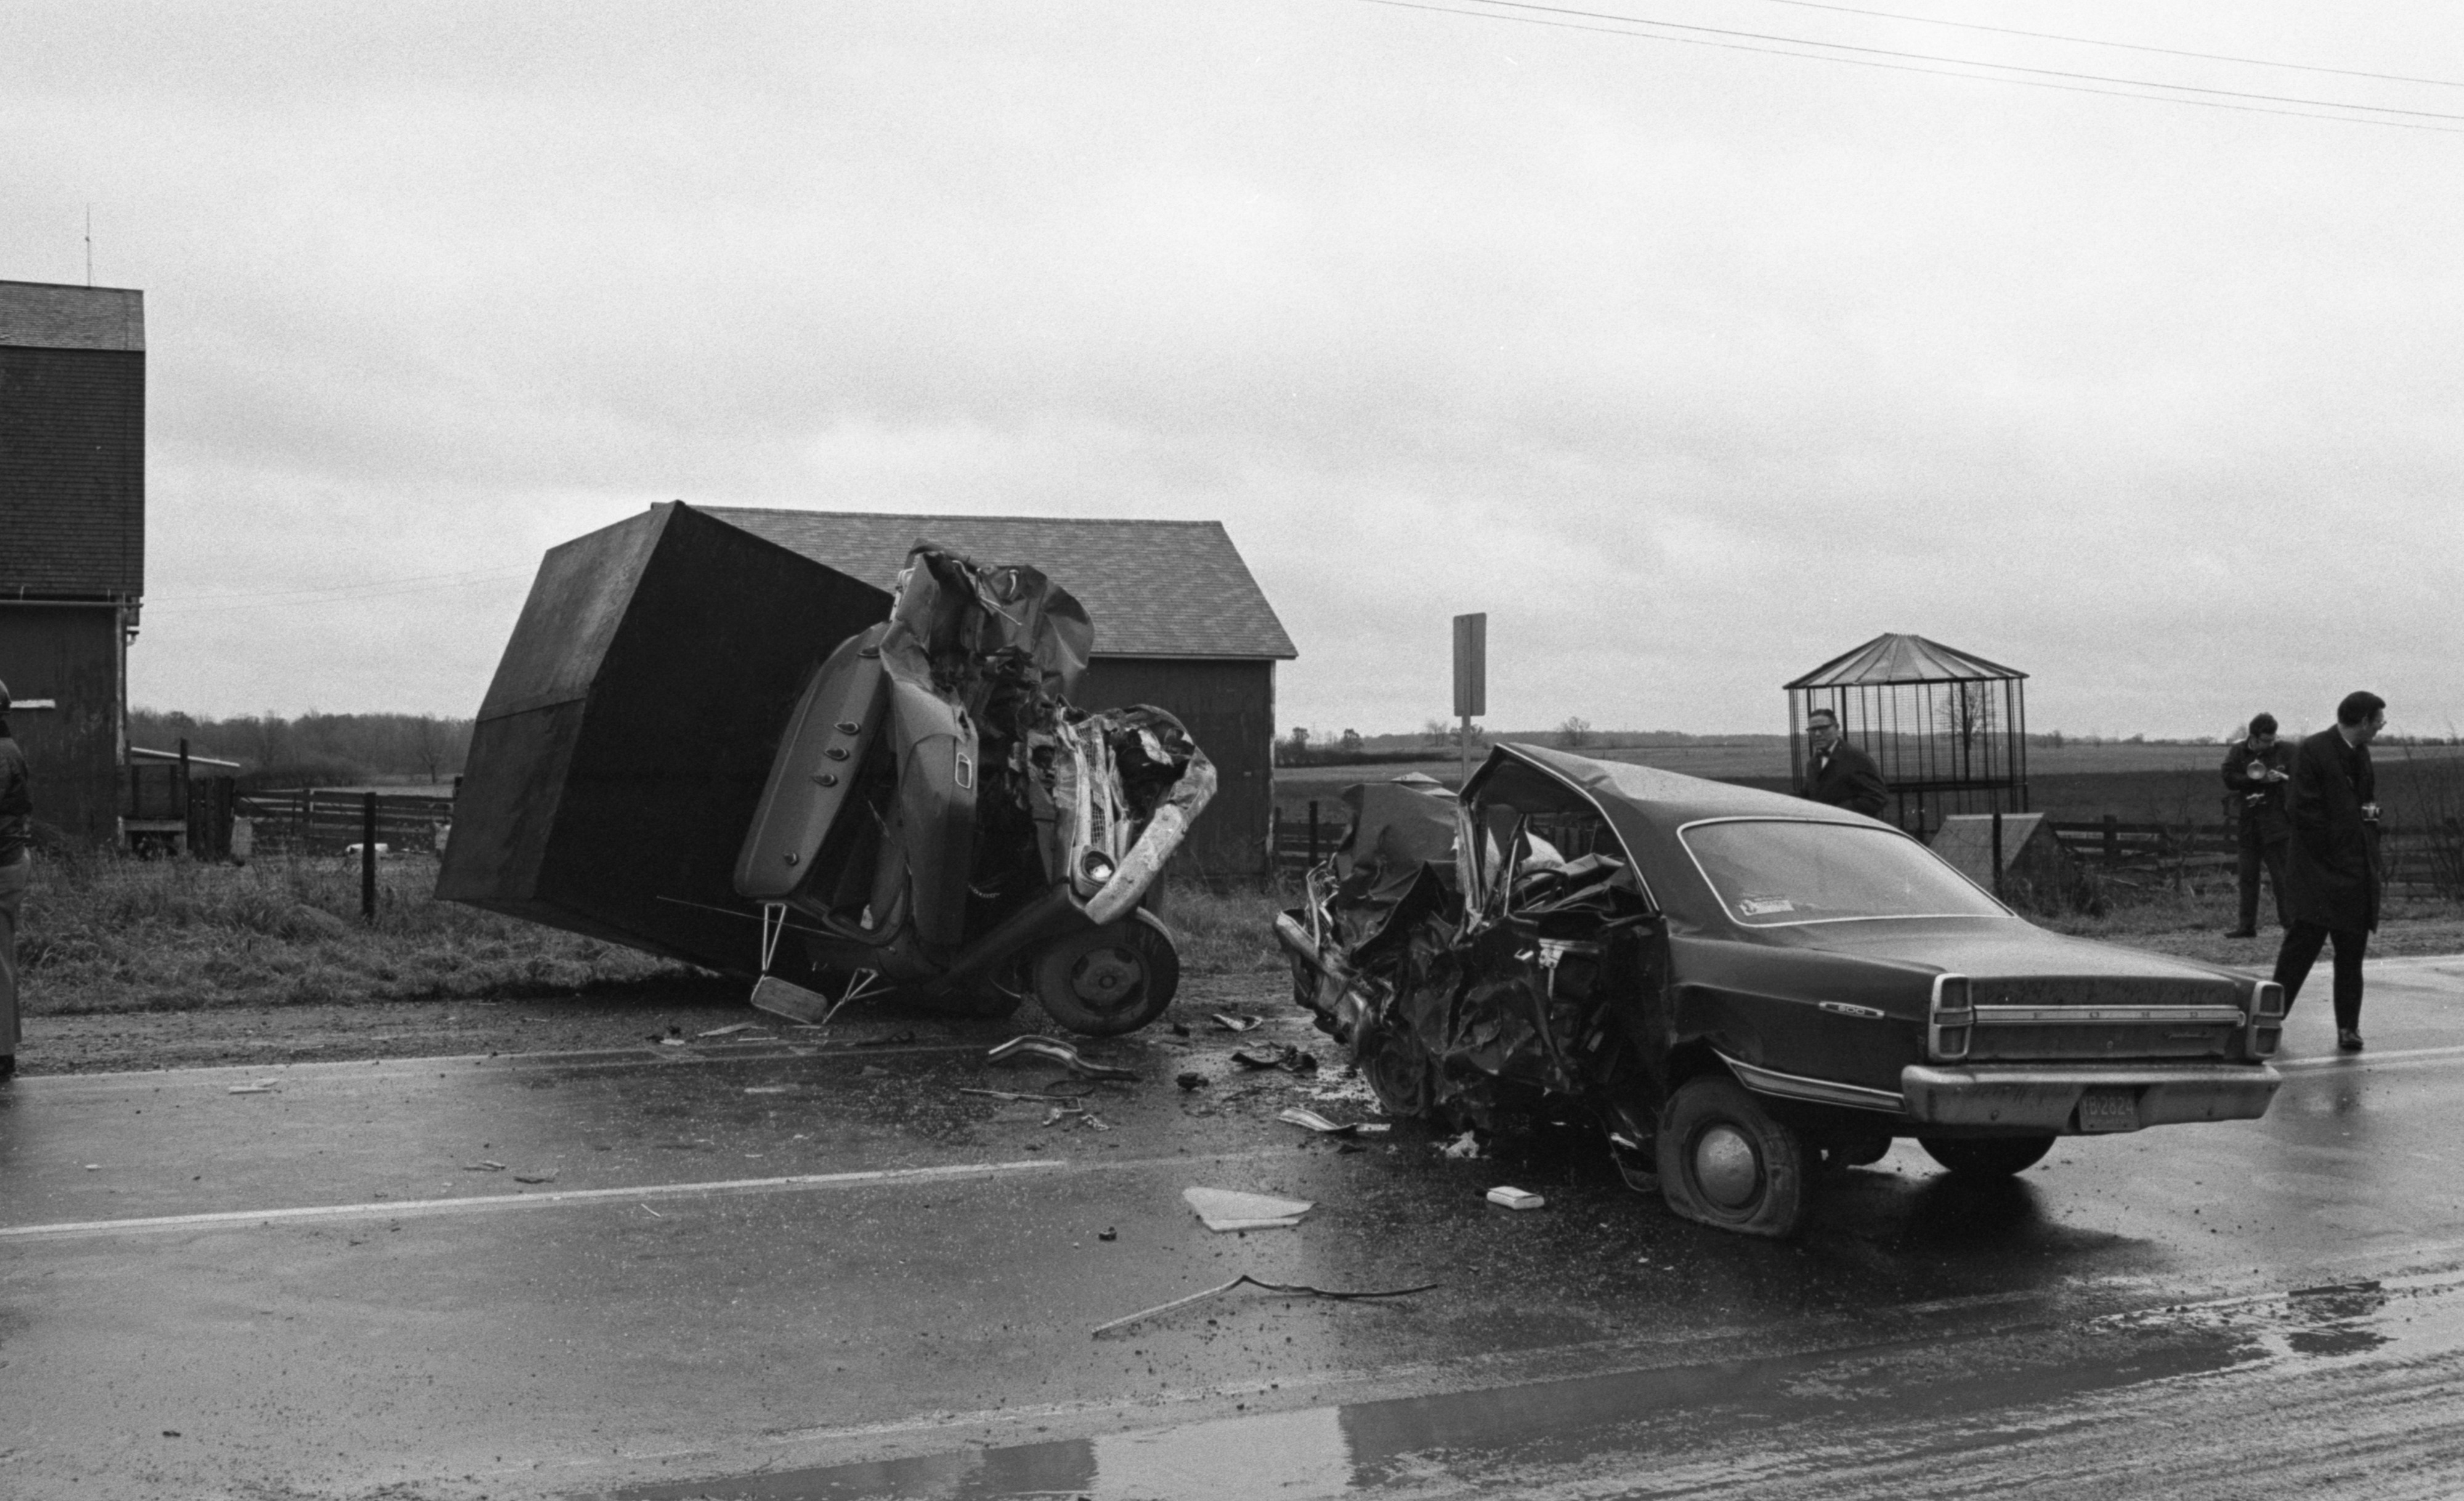 US-12 Accident Scene Where Garry Rathke Was Killed, November 1968 image